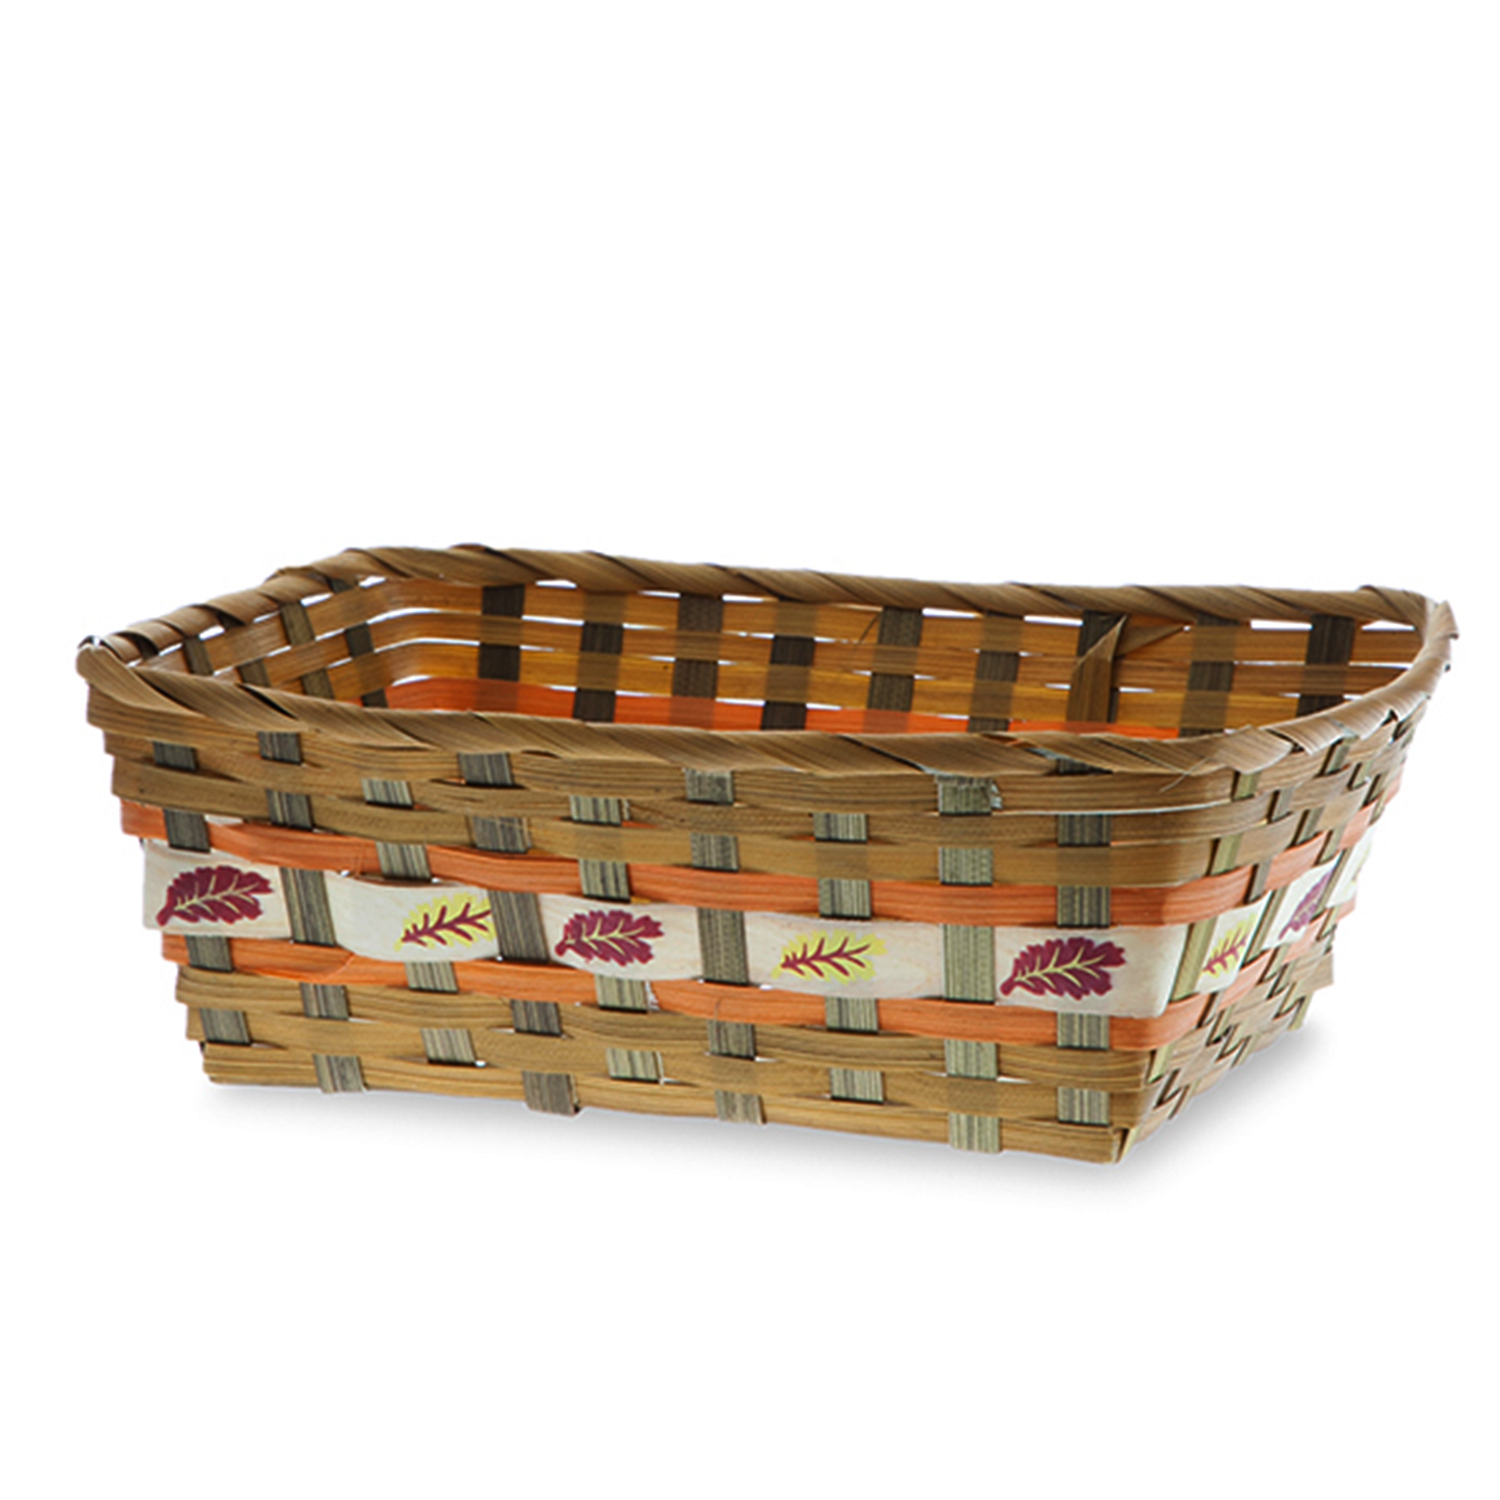 Rect Bamboo Fall Leaf Design Tray Basket 11in